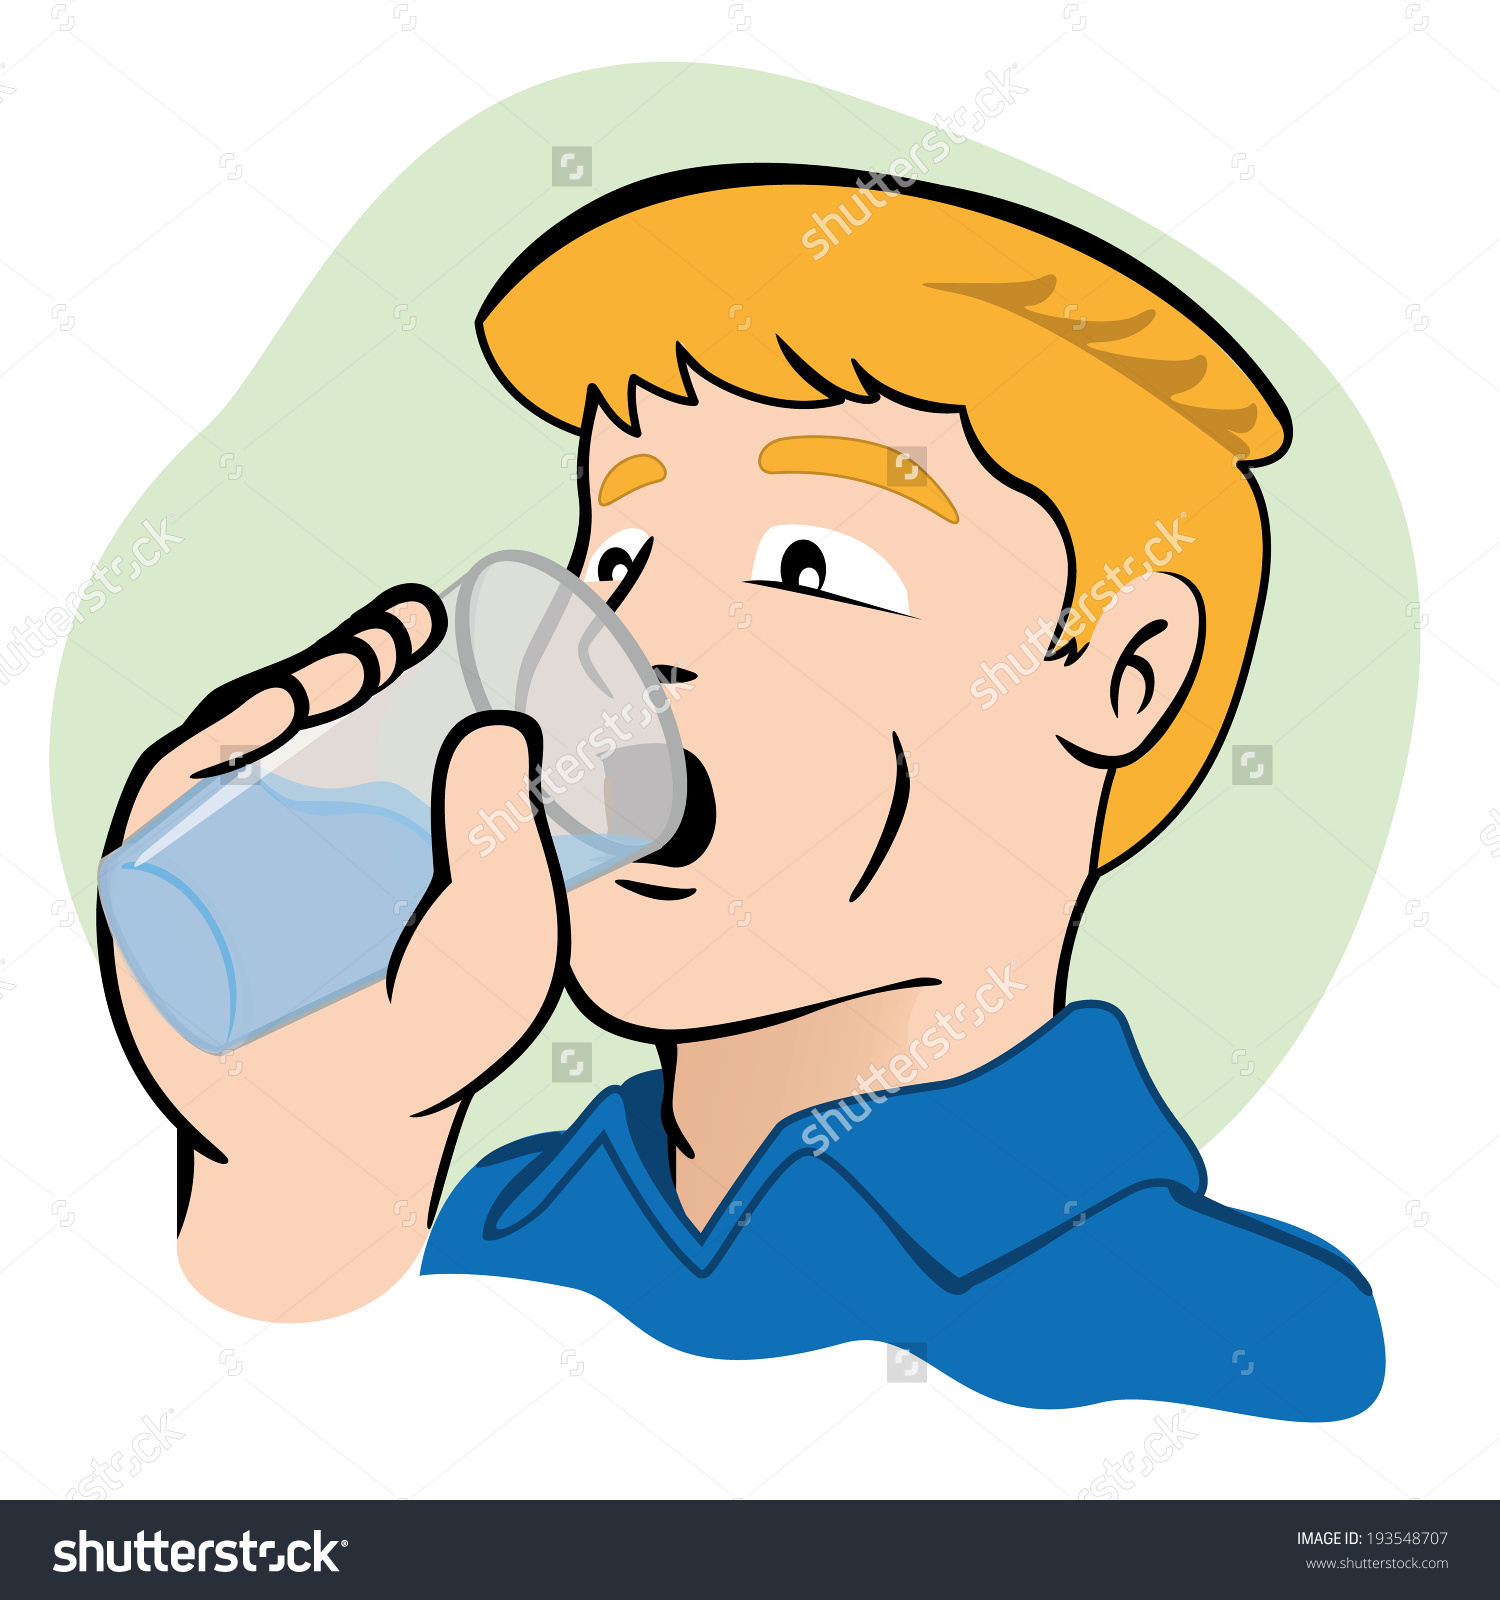 Someone drinking water clipart.